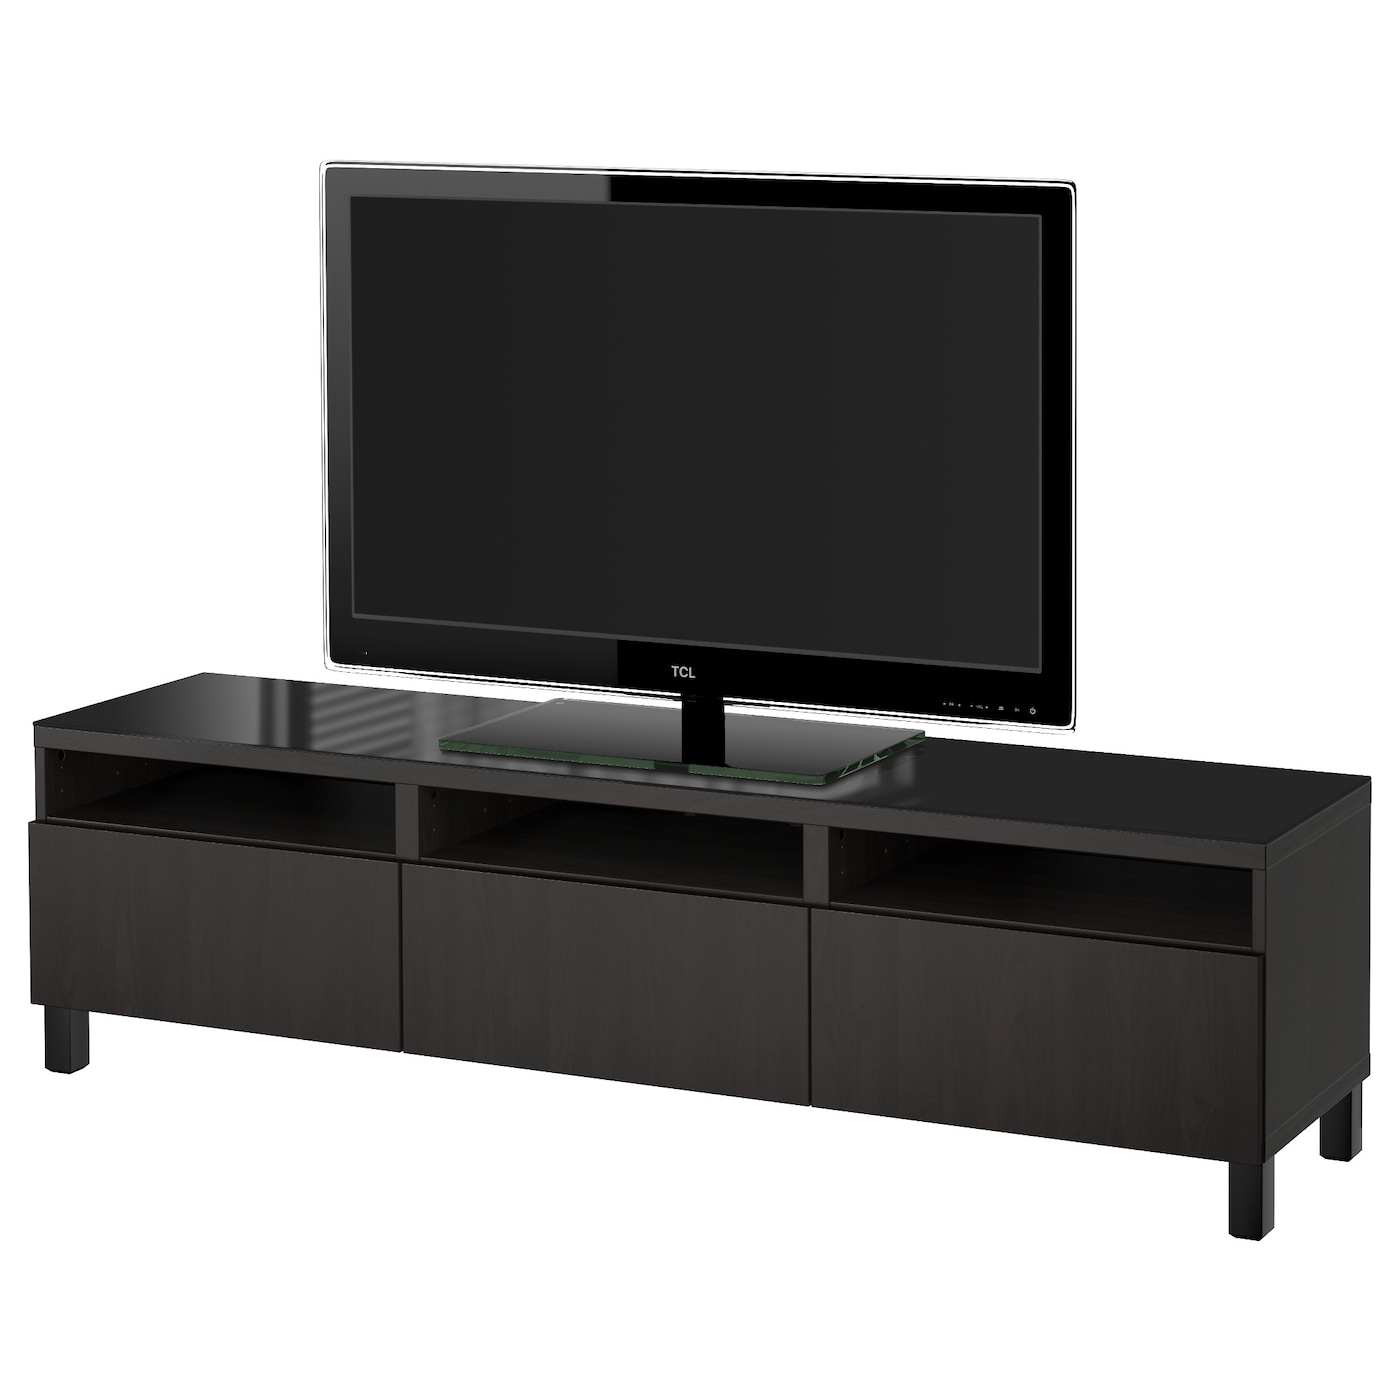 best banc tv avec tiroirs lappviken brun noir 180x40x48 cm ikea. Black Bedroom Furniture Sets. Home Design Ideas